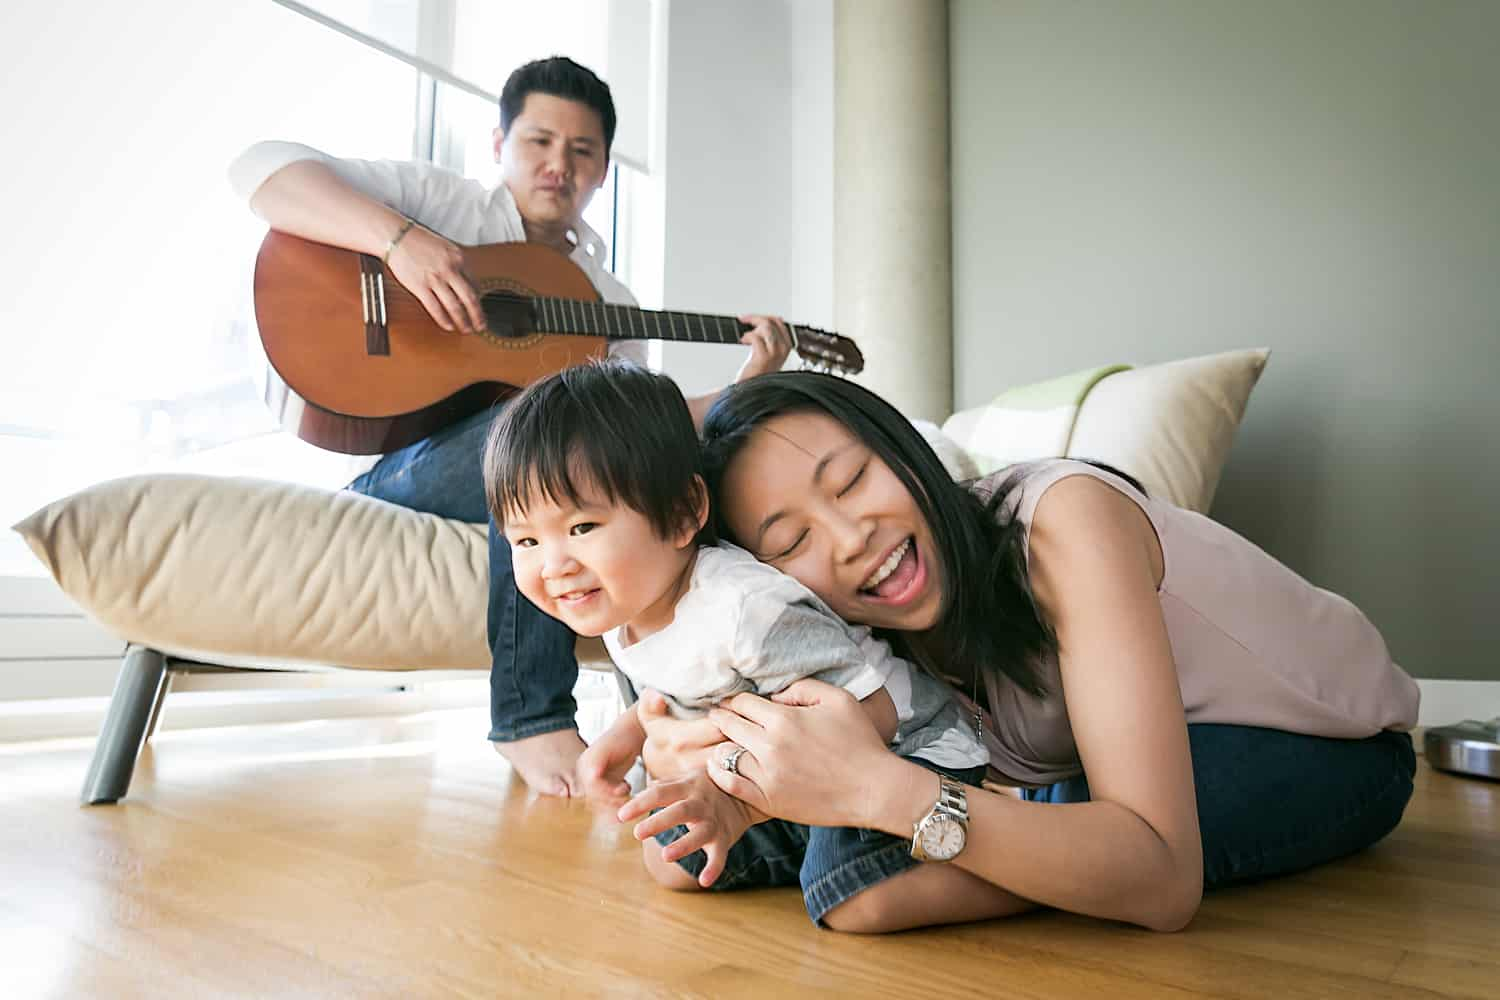 Manhattan family portrait of parents and child playing guitar